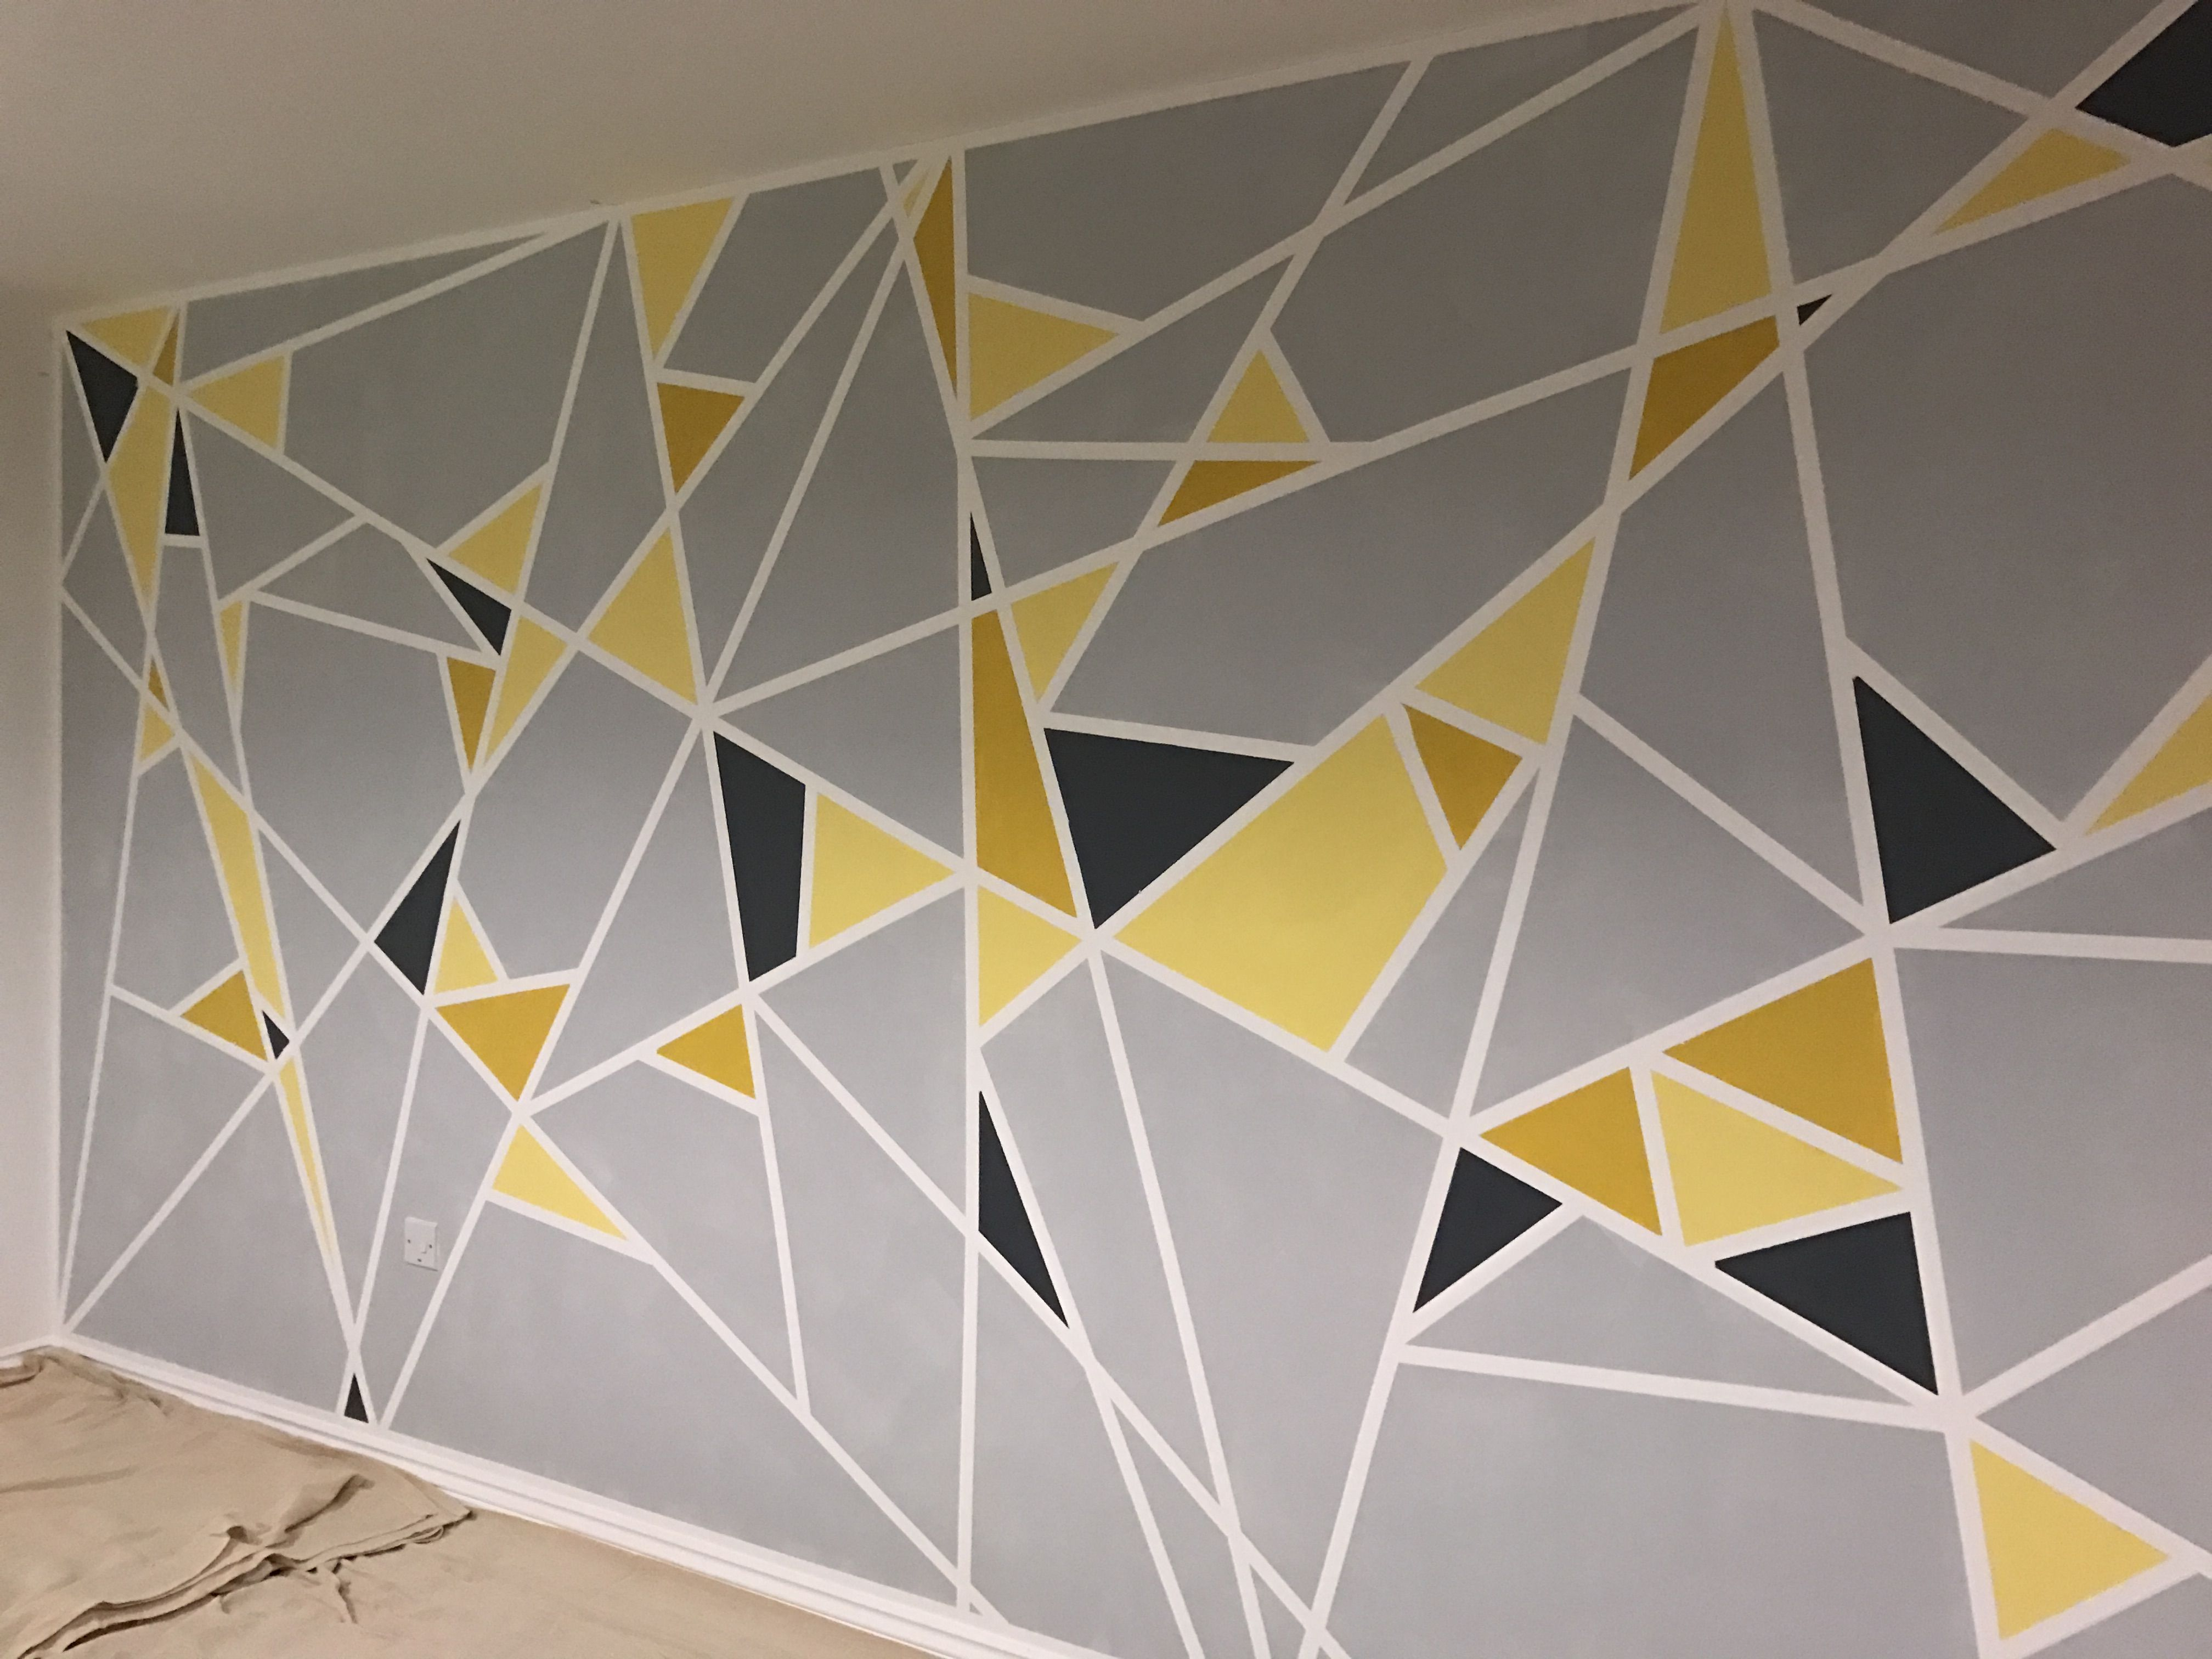 Geometric Painted Wall Shades Of Yellow And Grey With Masking